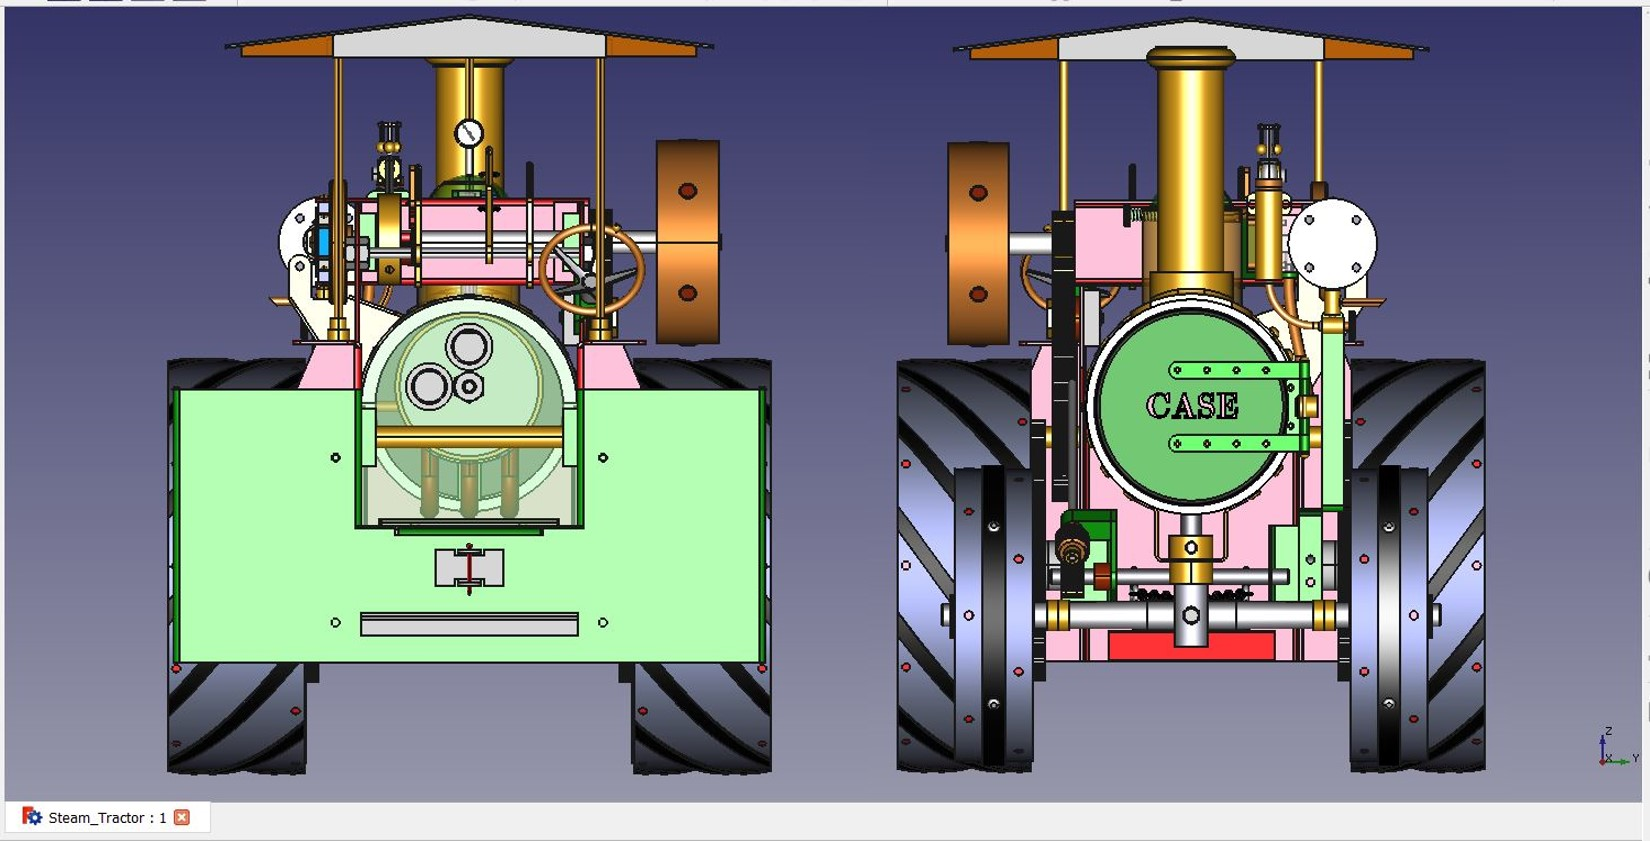 Steam_Tractor-Front_Rear.jpg